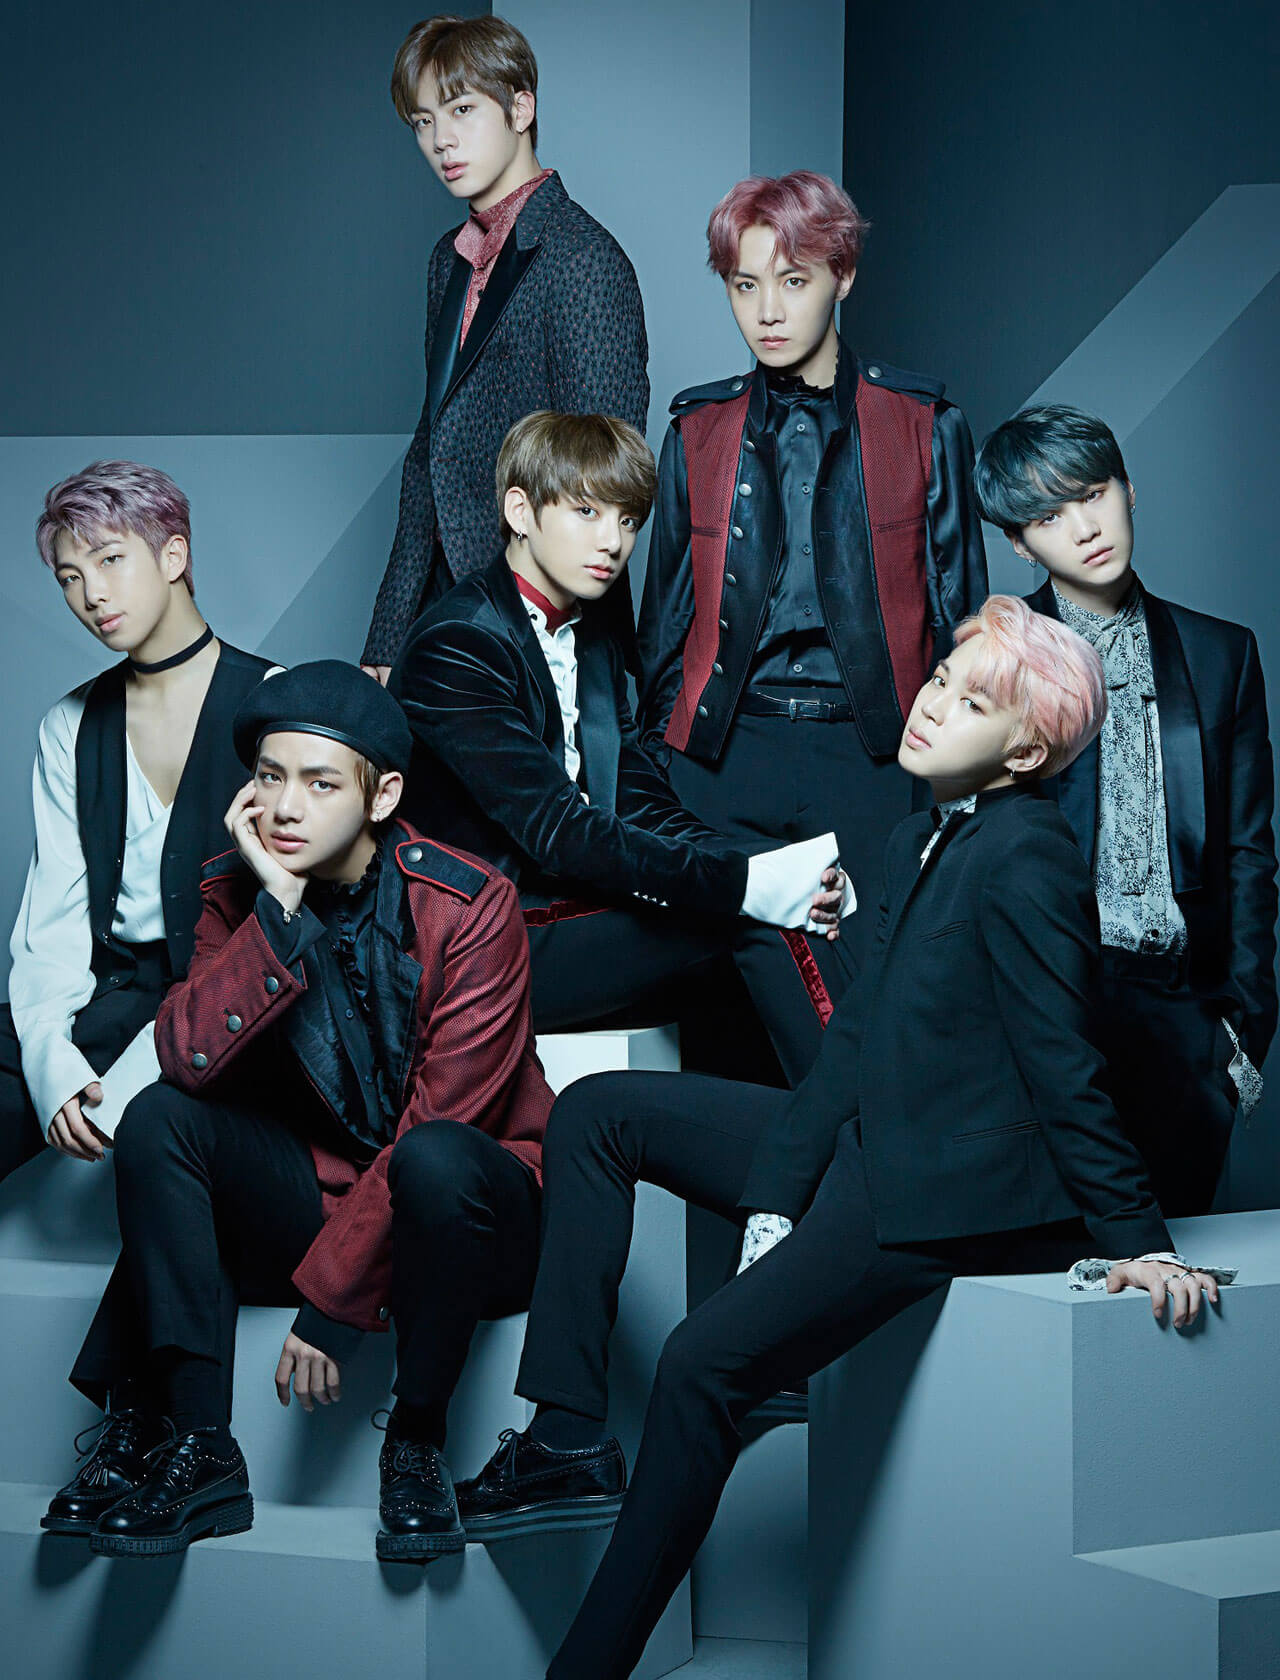 Bts Images Bts Japanese Album Hd Wallpaper And Background Photos